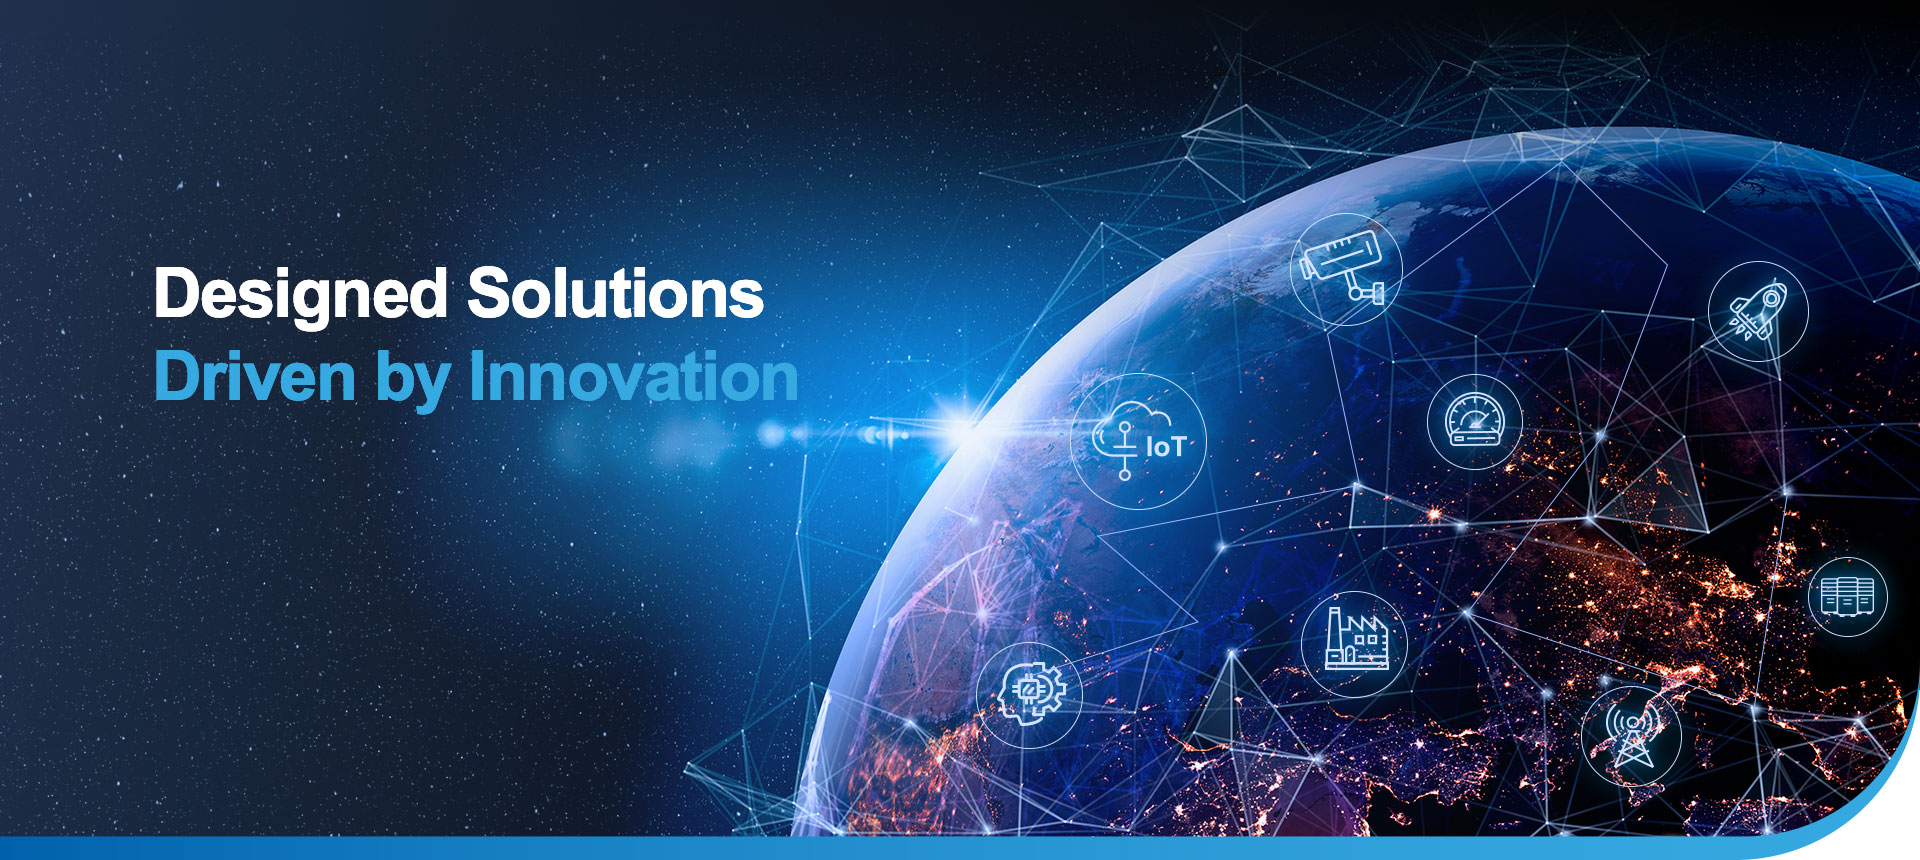 Design Solutions Driven by Innovation